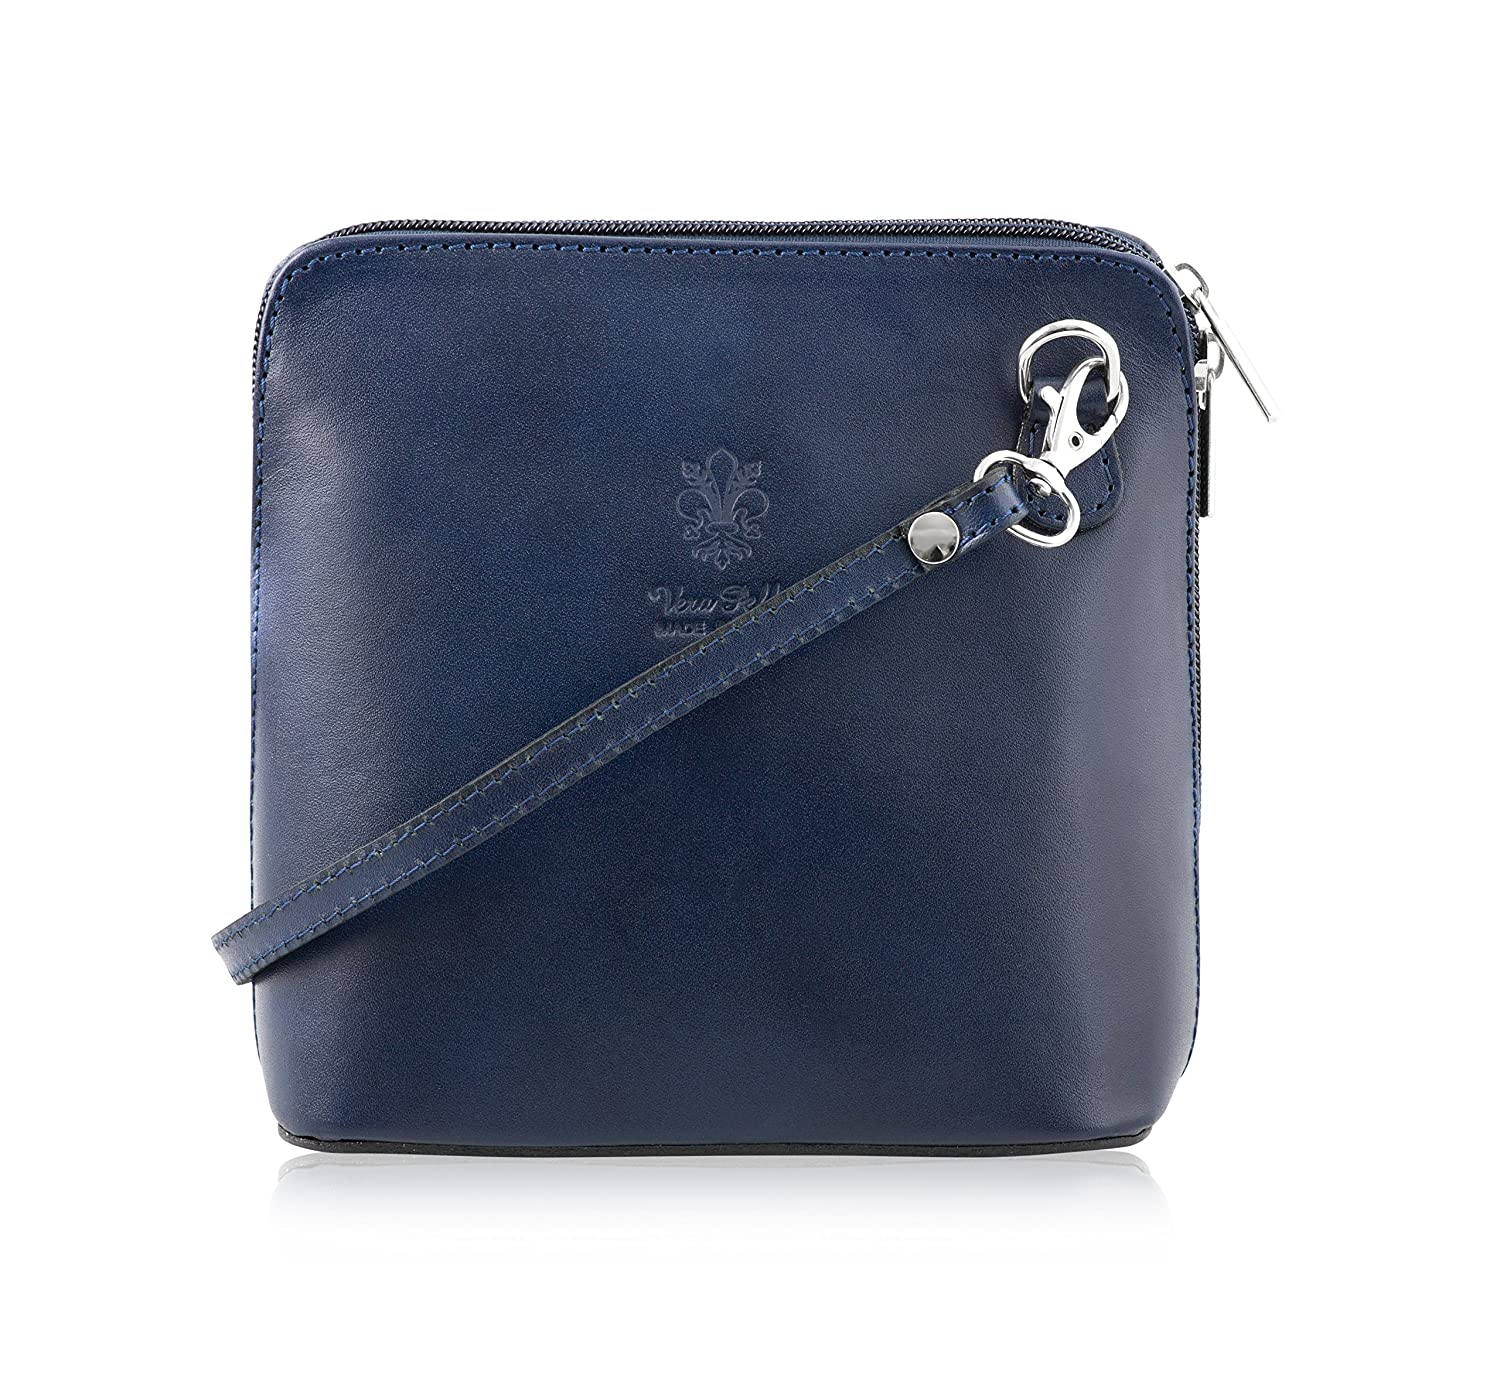 100% Italian Leather Handmade Small/Mini Cross Body/Shoulder HandBag/Clubbing Bag- Design 2018 in Lapis Lazuli - Made in Italy Mayfair Cashmere